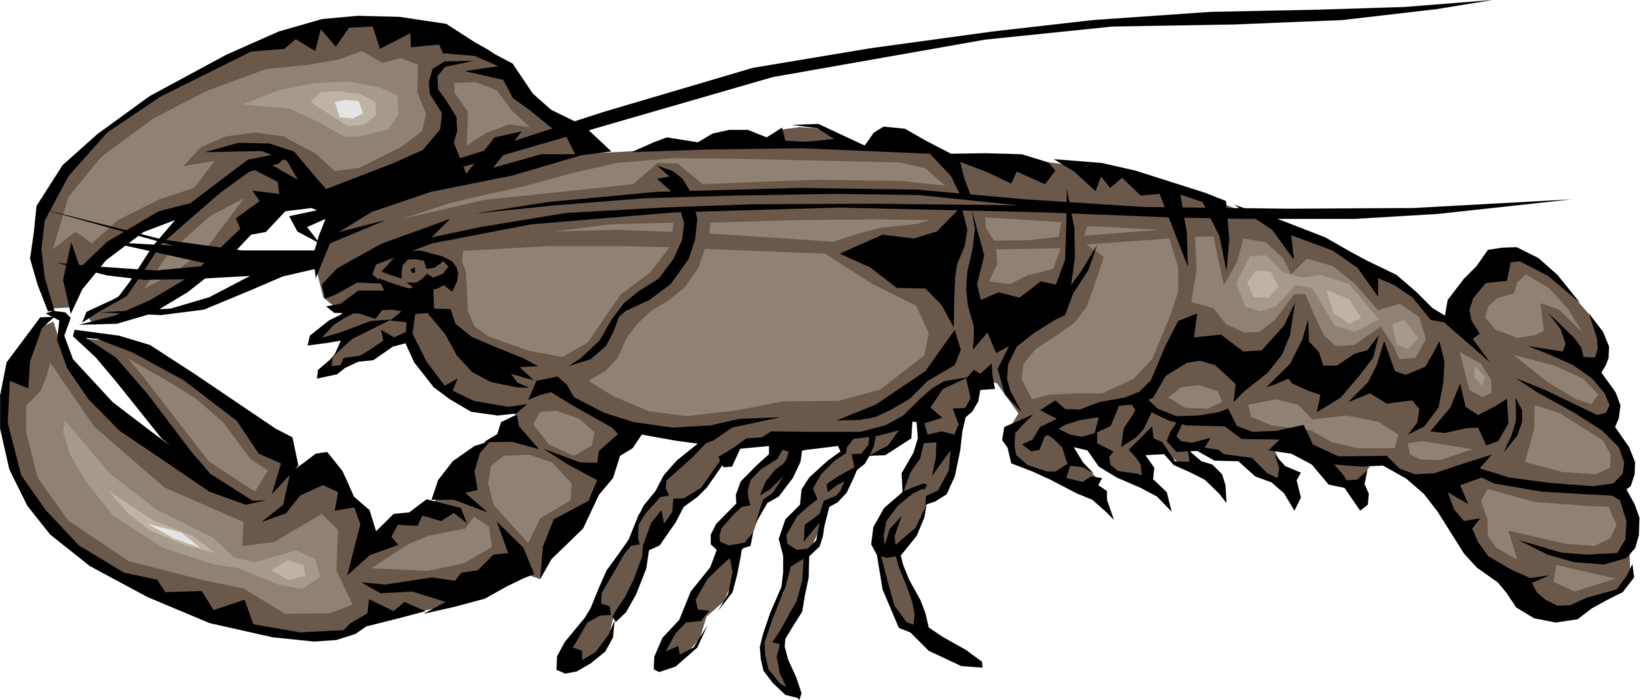 Vector Illustration of Clawed Lobster Shellfish Marine Seafood Crustacean